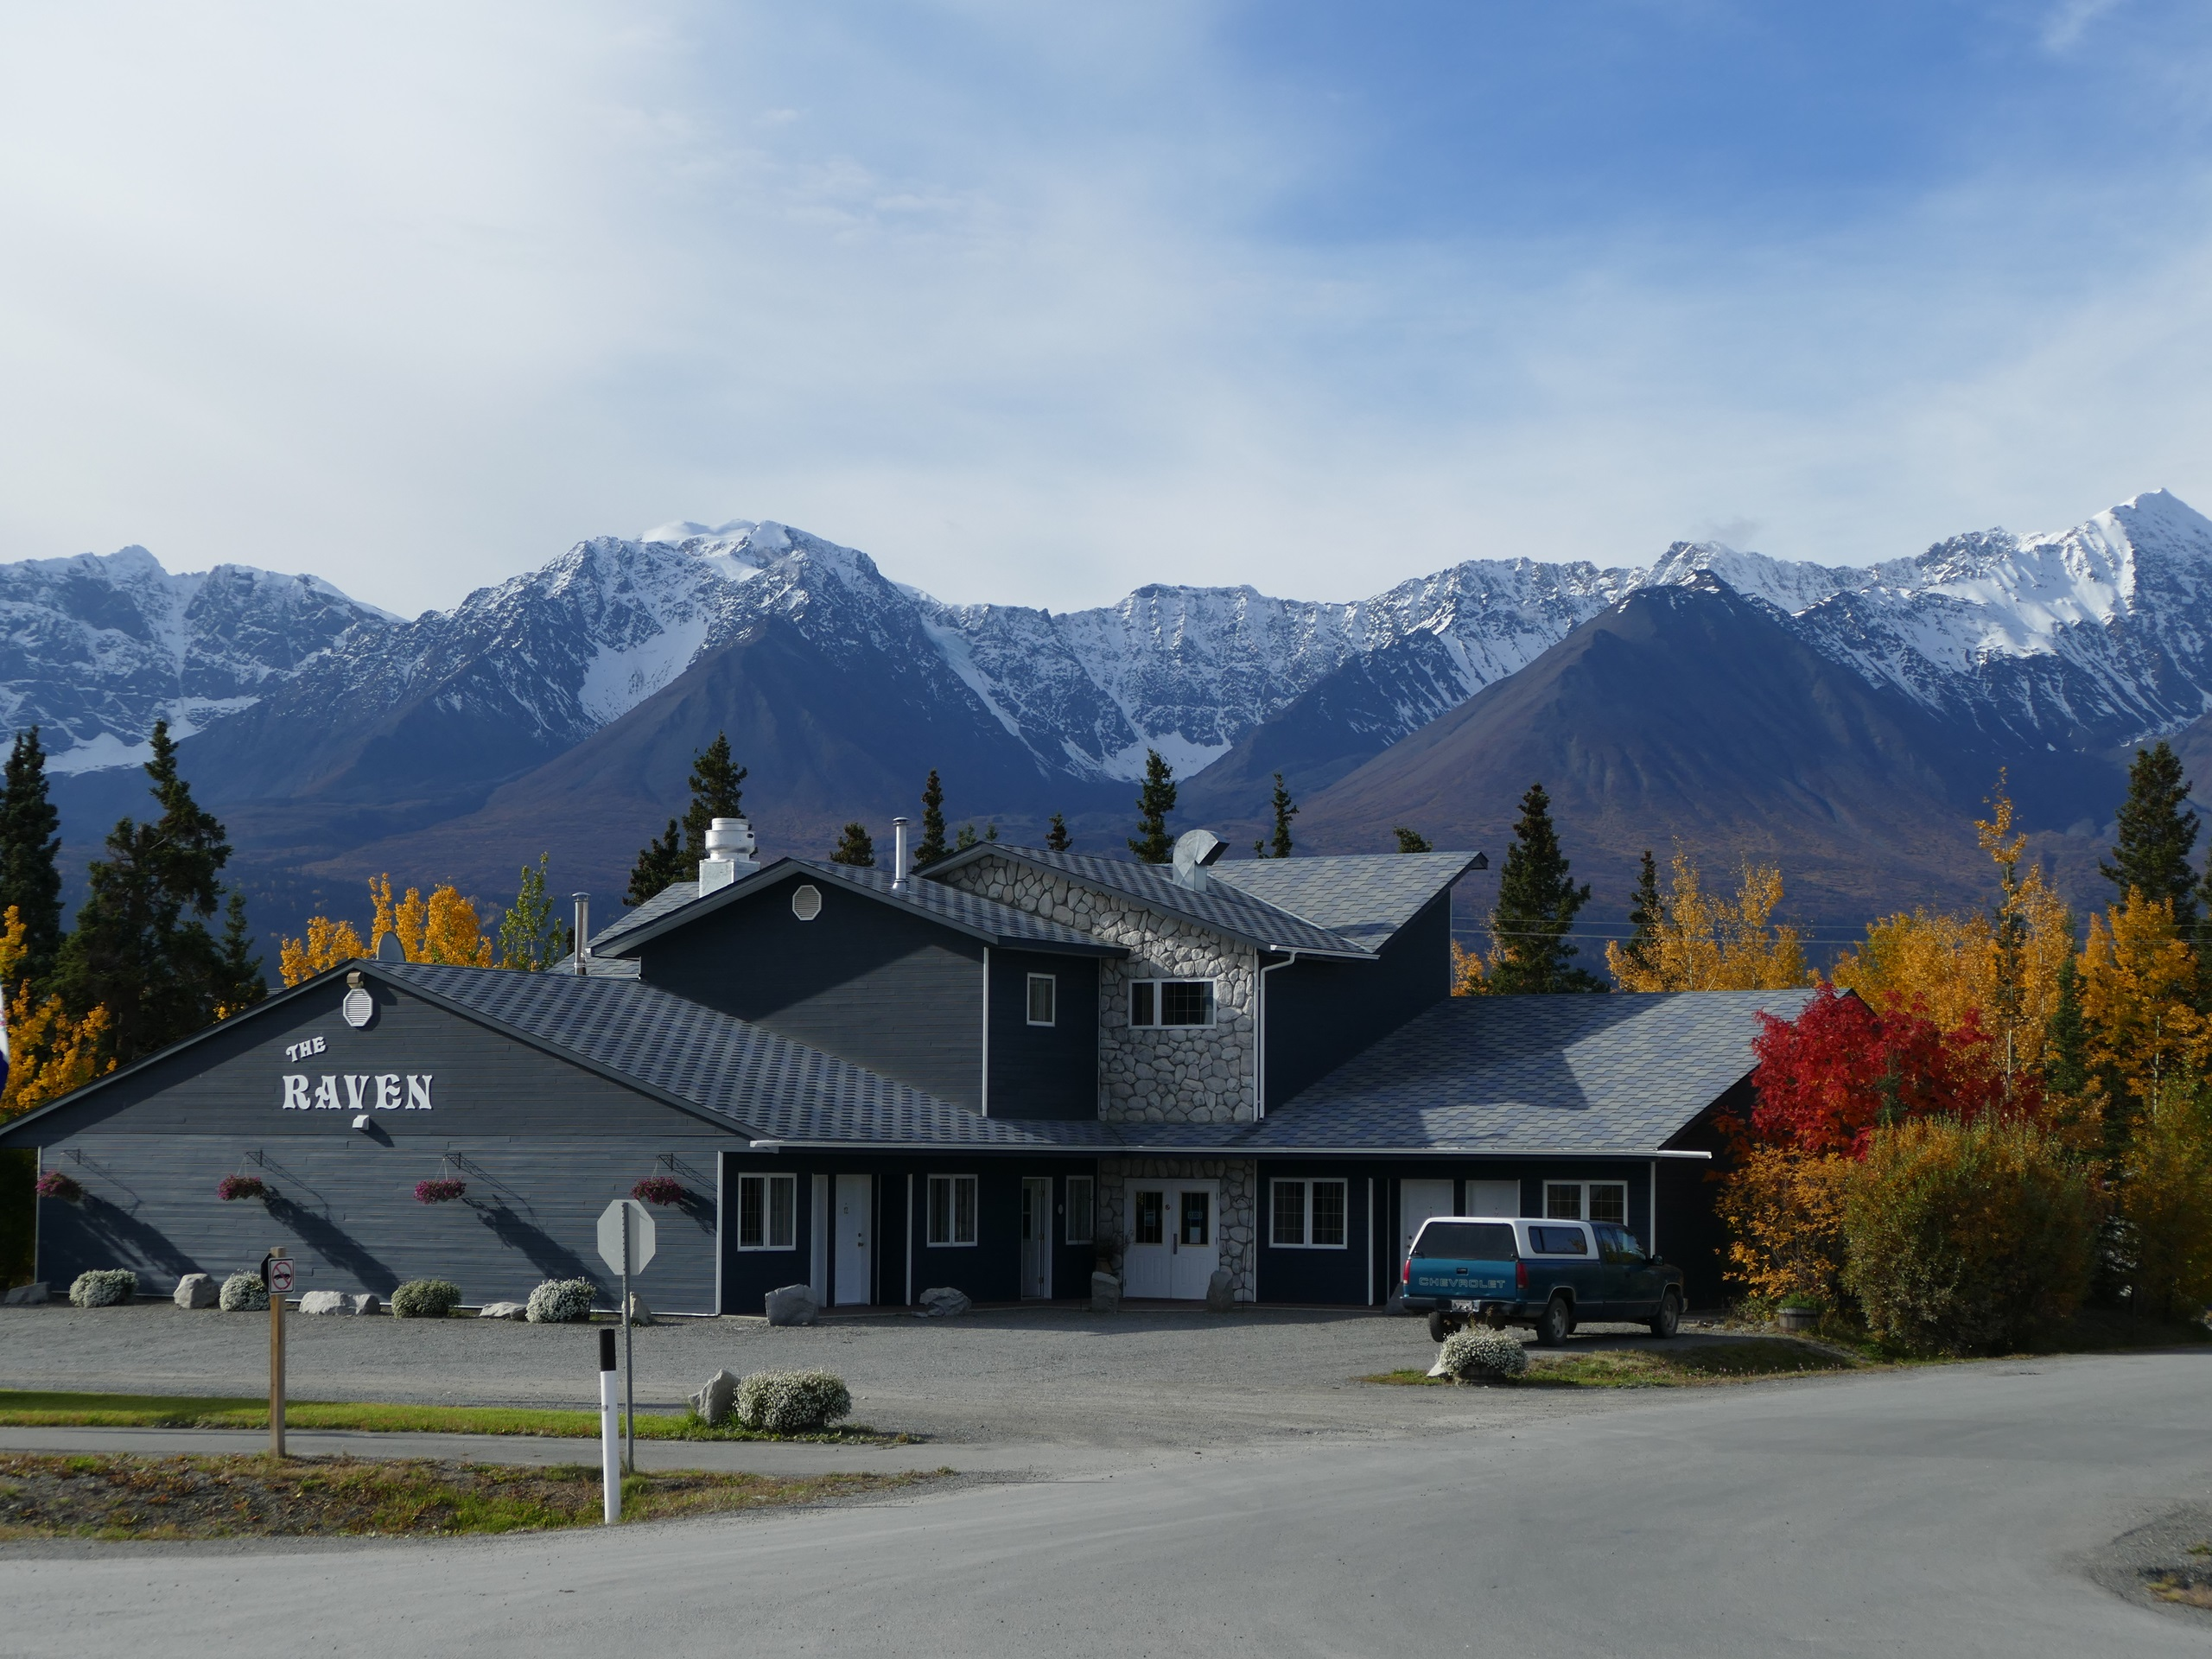 094_Raven_Hotel_Haines_Junction.JPG